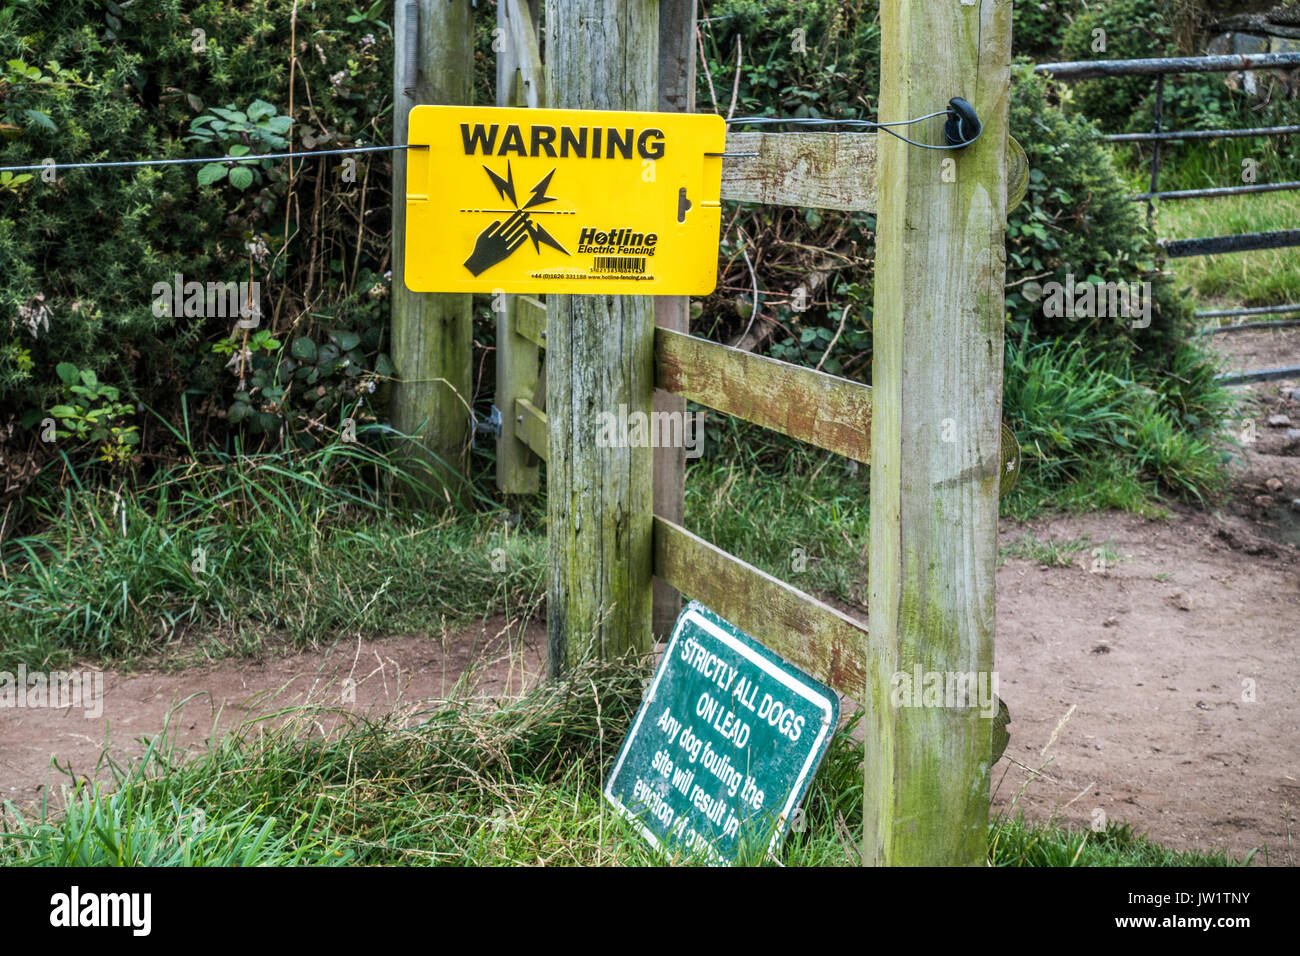 Warning sign for Hotline electric fencing, to counter straying cattle. Sennen, Cornwall, England, UK. - Stock Image